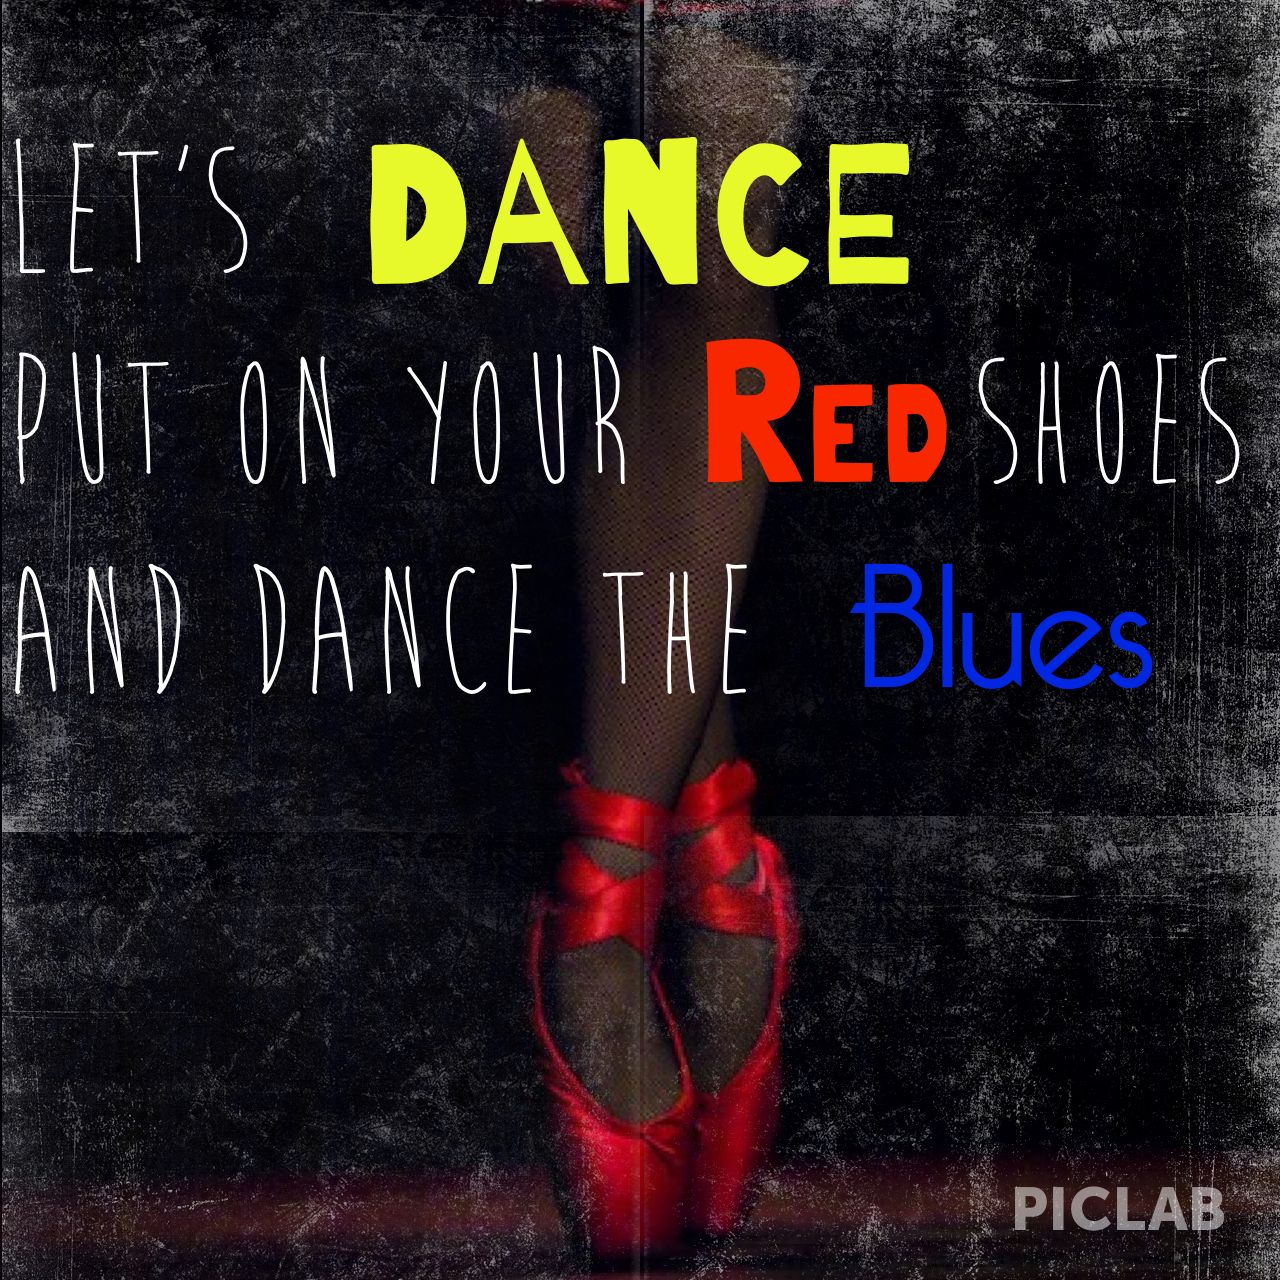 David bowie lyrics lets dance put on your red shoes and dance the david bowie lyrics lets dance put on your red shoes and dance the blues stopboris Gallery